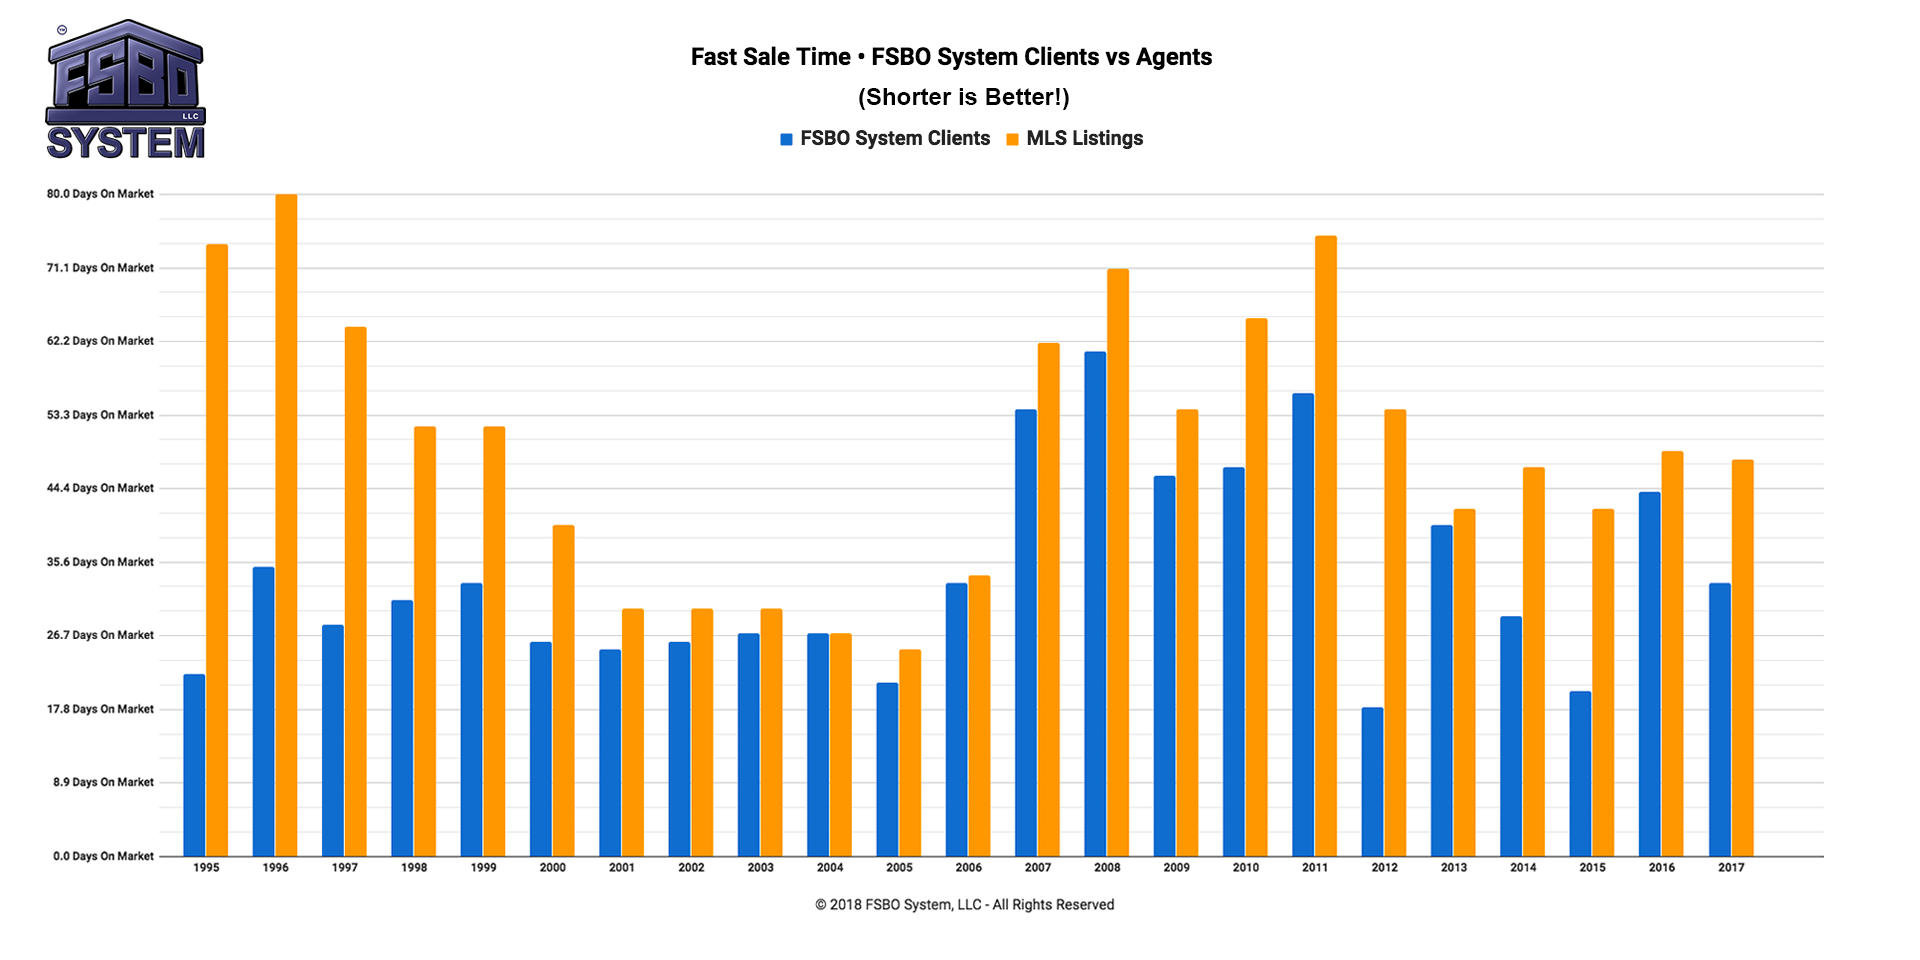 Fast-Sale-Time-FSBO-System-Clients-vs-Agents-2018